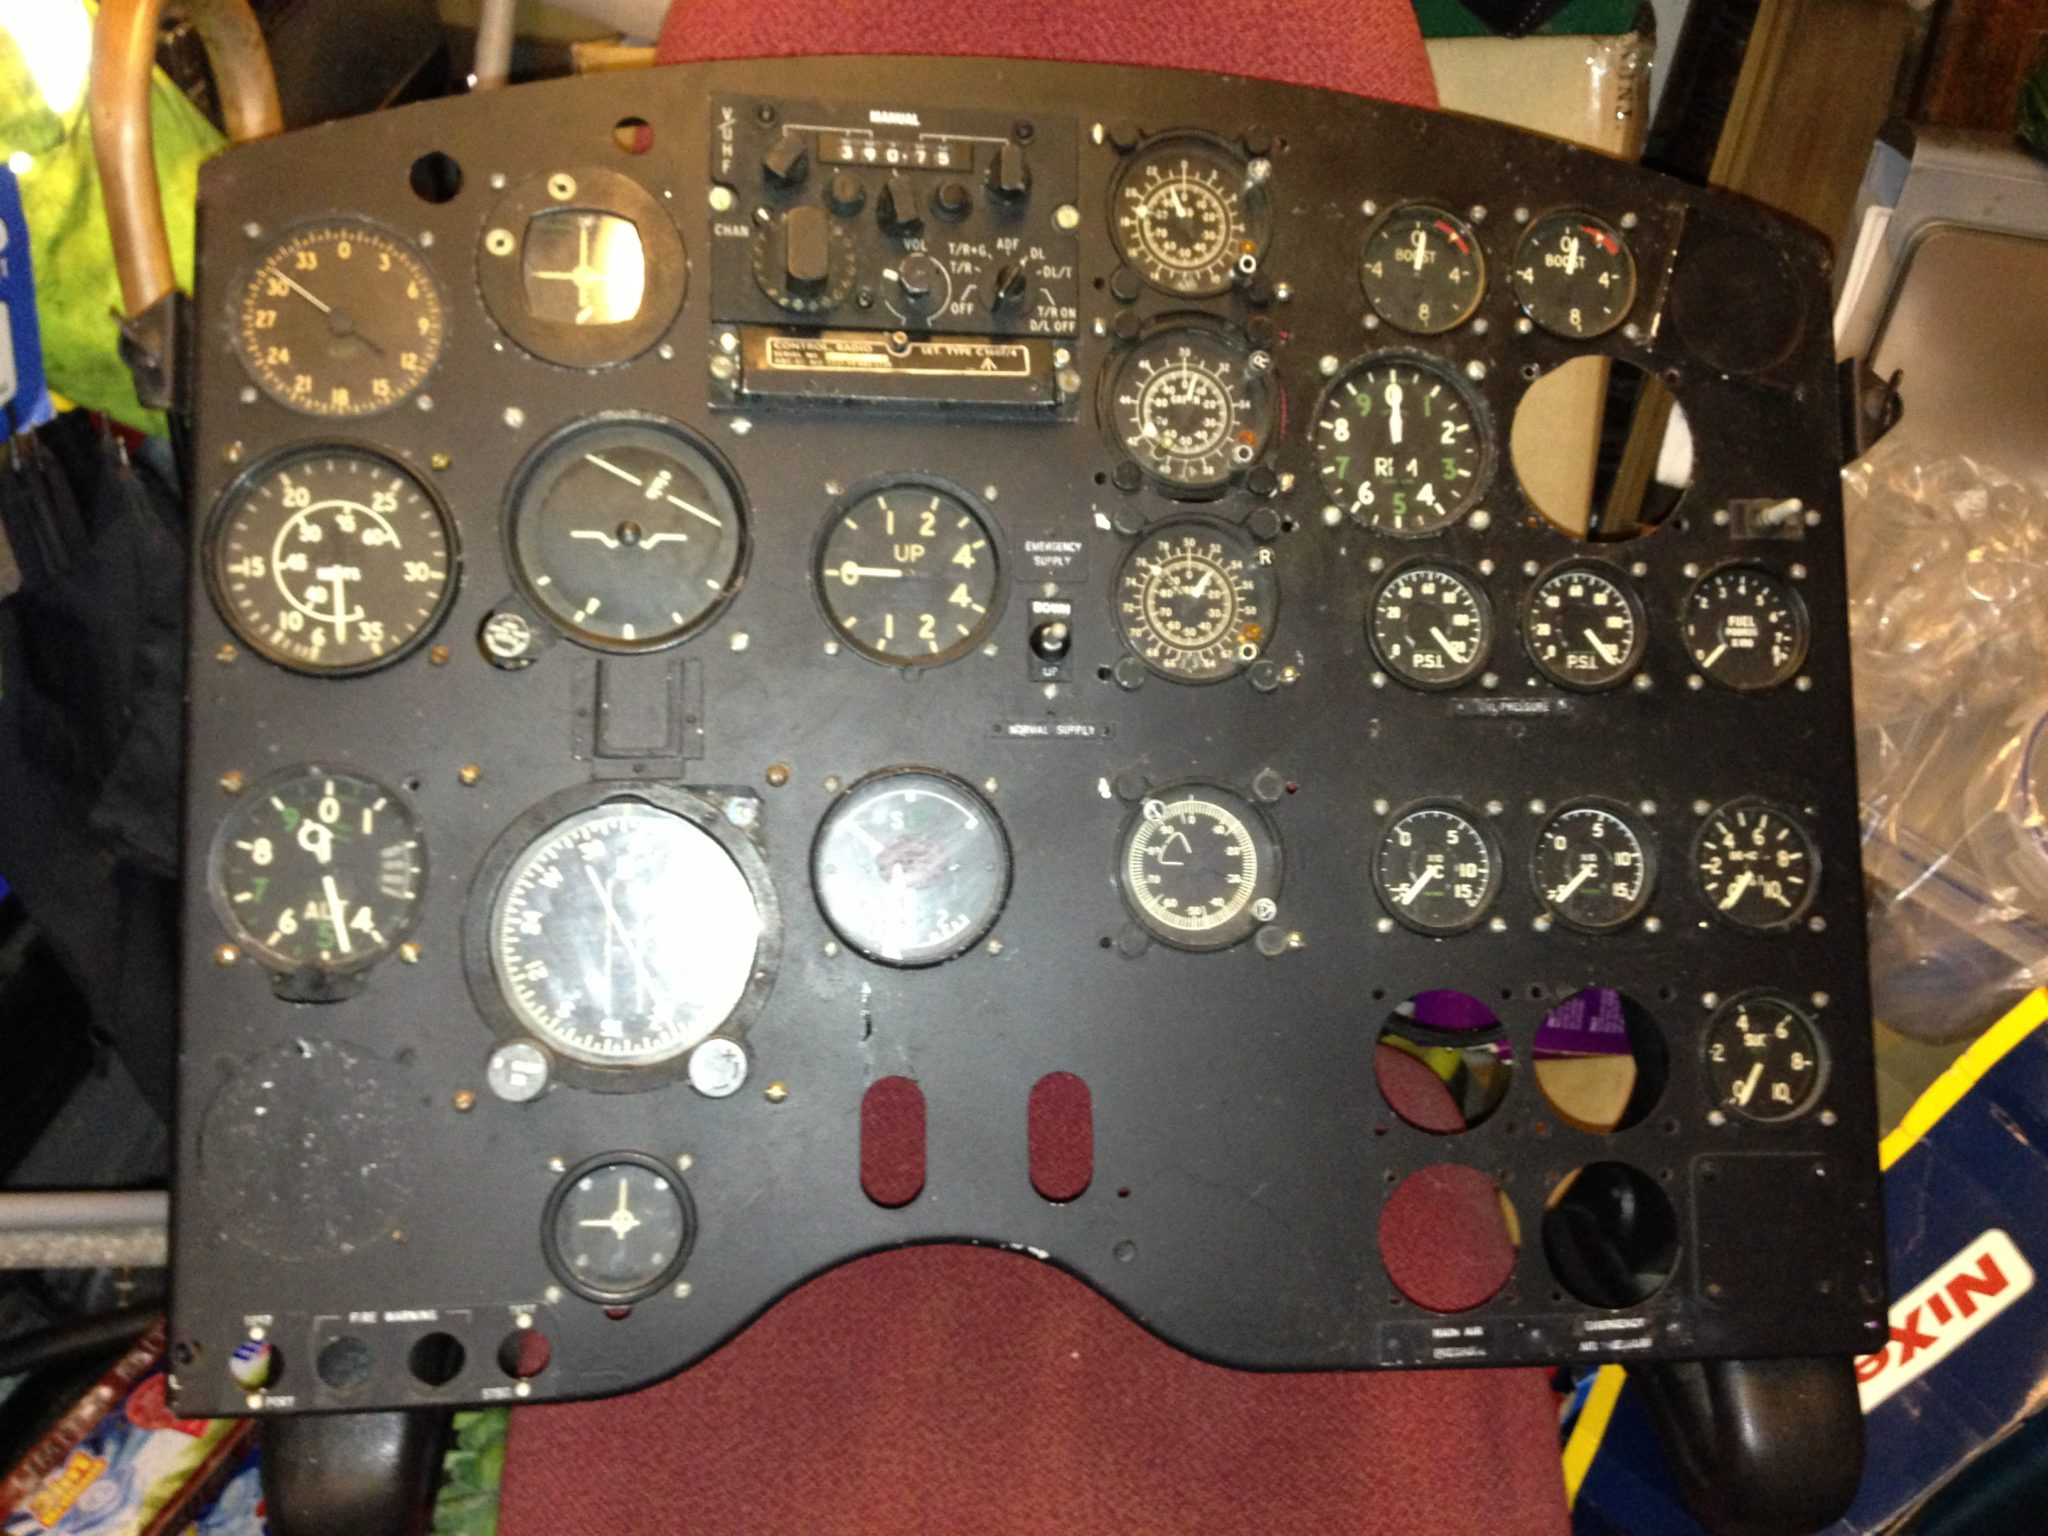 Aircraft Props - Cockpit Panel With Gauges